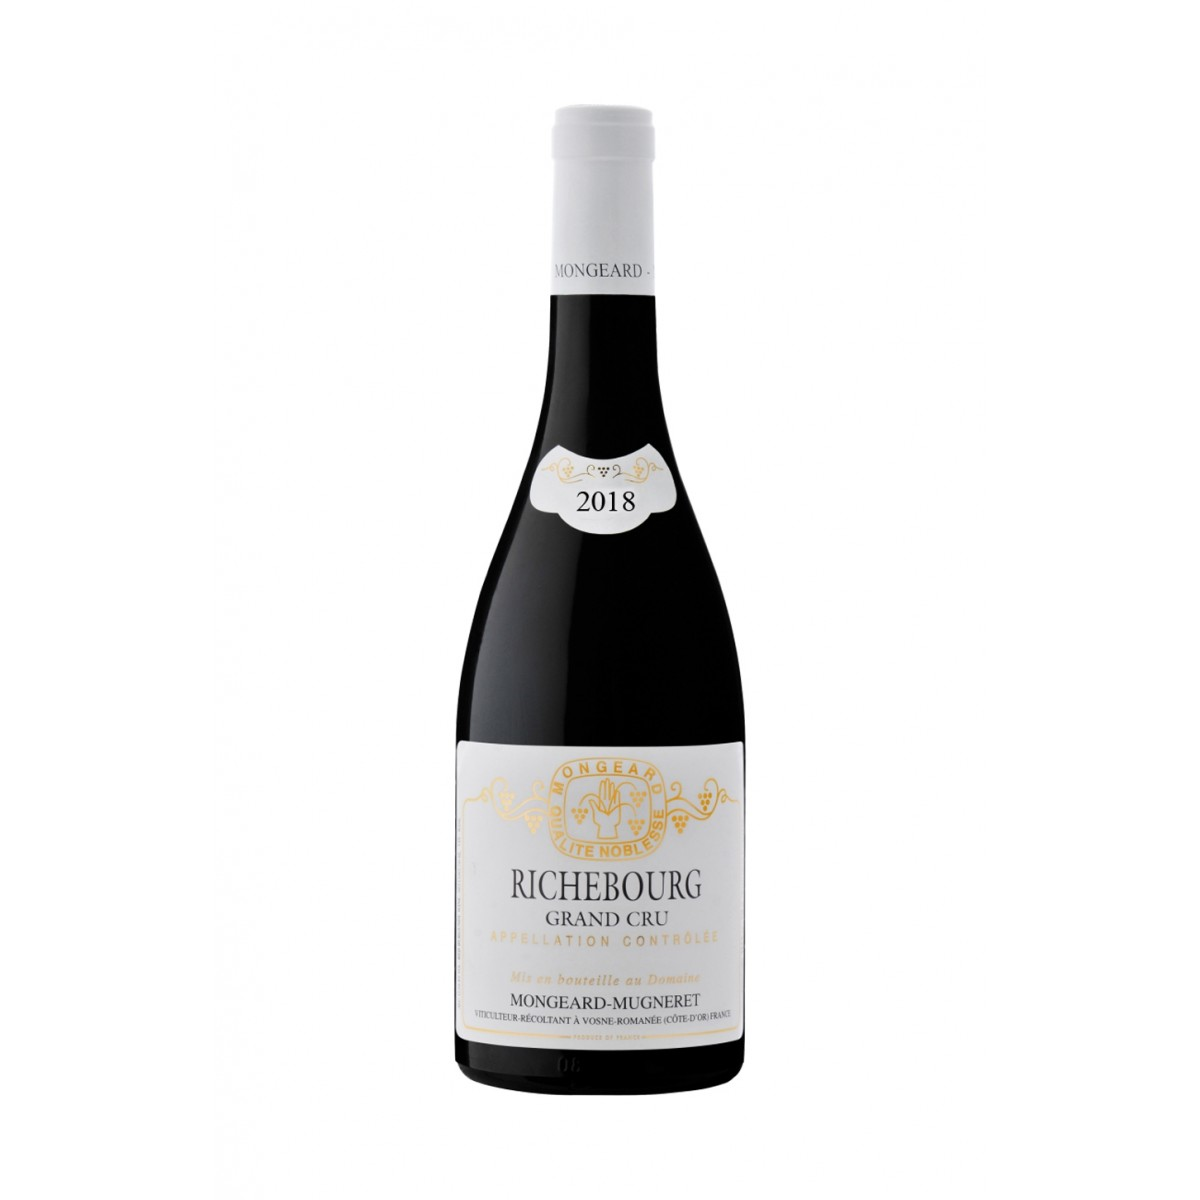 Richebourg Grand Cru 2018 - Domaine Mongeard-Mugneret